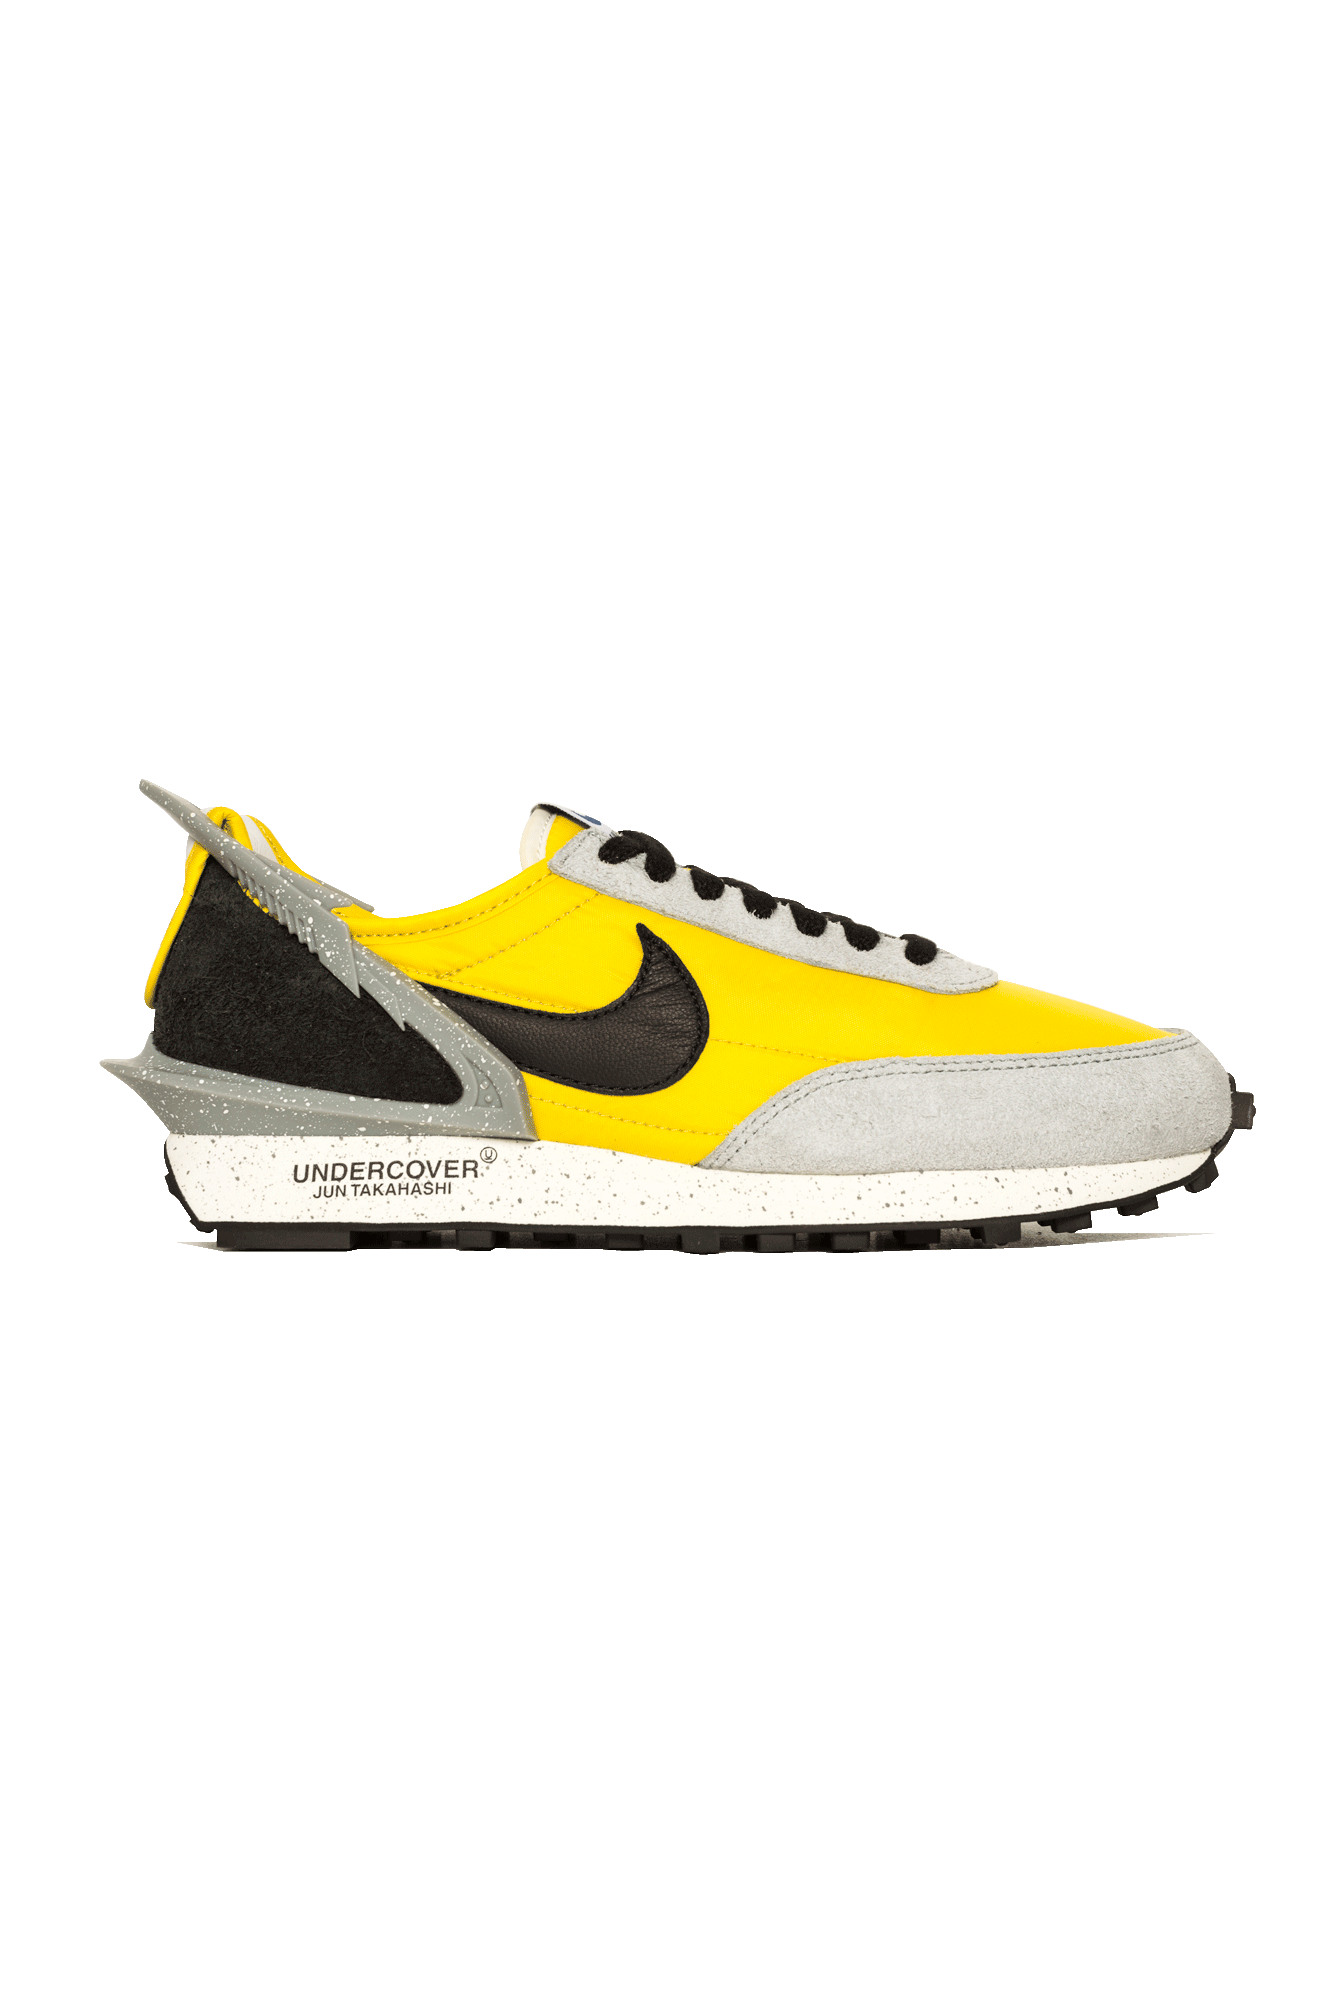 Nike Sneakers DBREAK x UNDERCOVER Giallo BV4594-#000#700#4 - One Block Down